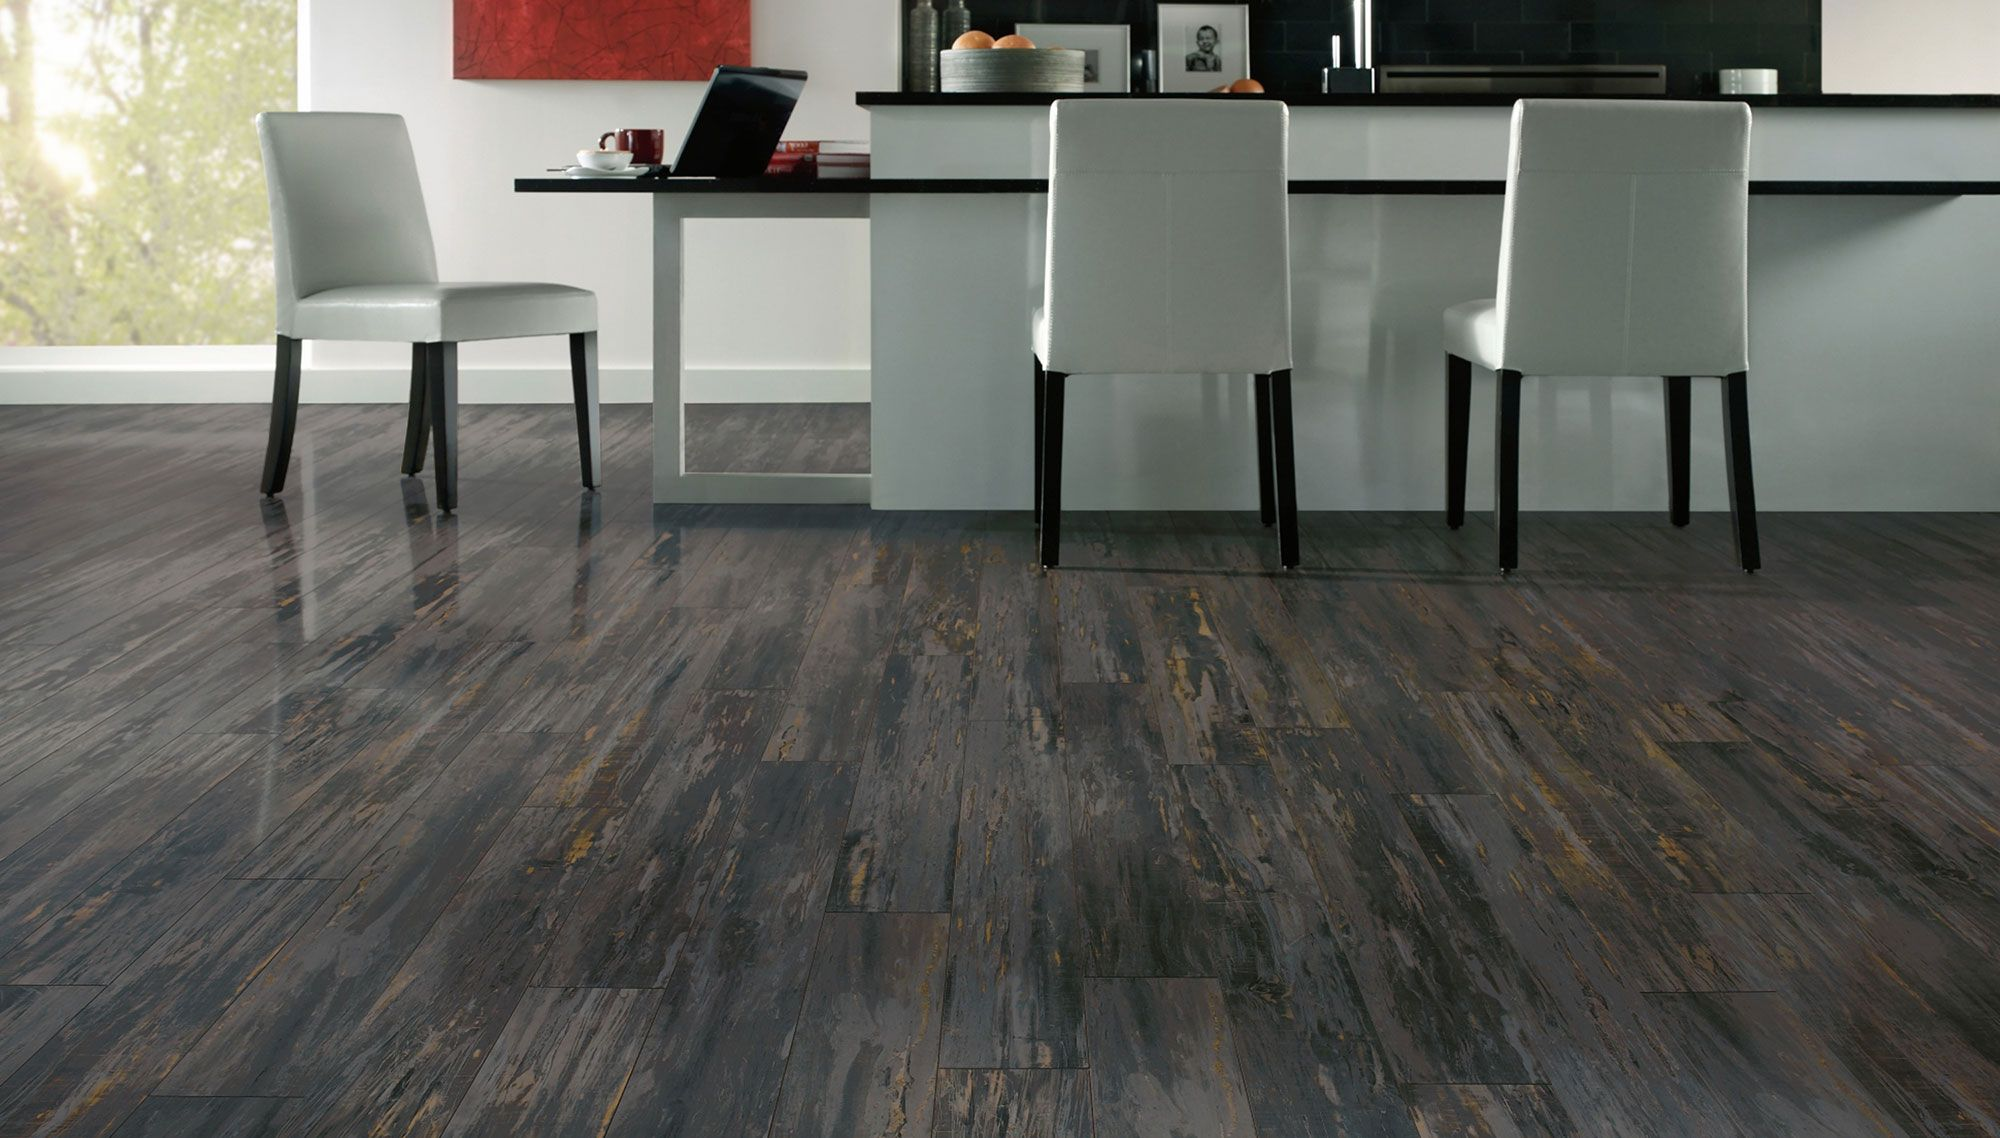 Floor Stunning Grey Laminate Flooring Below White Cushion Chairs And Rectangle Modern Table Fake Wood Flooring Wood Laminate Flooring Grey Laminate Flooring